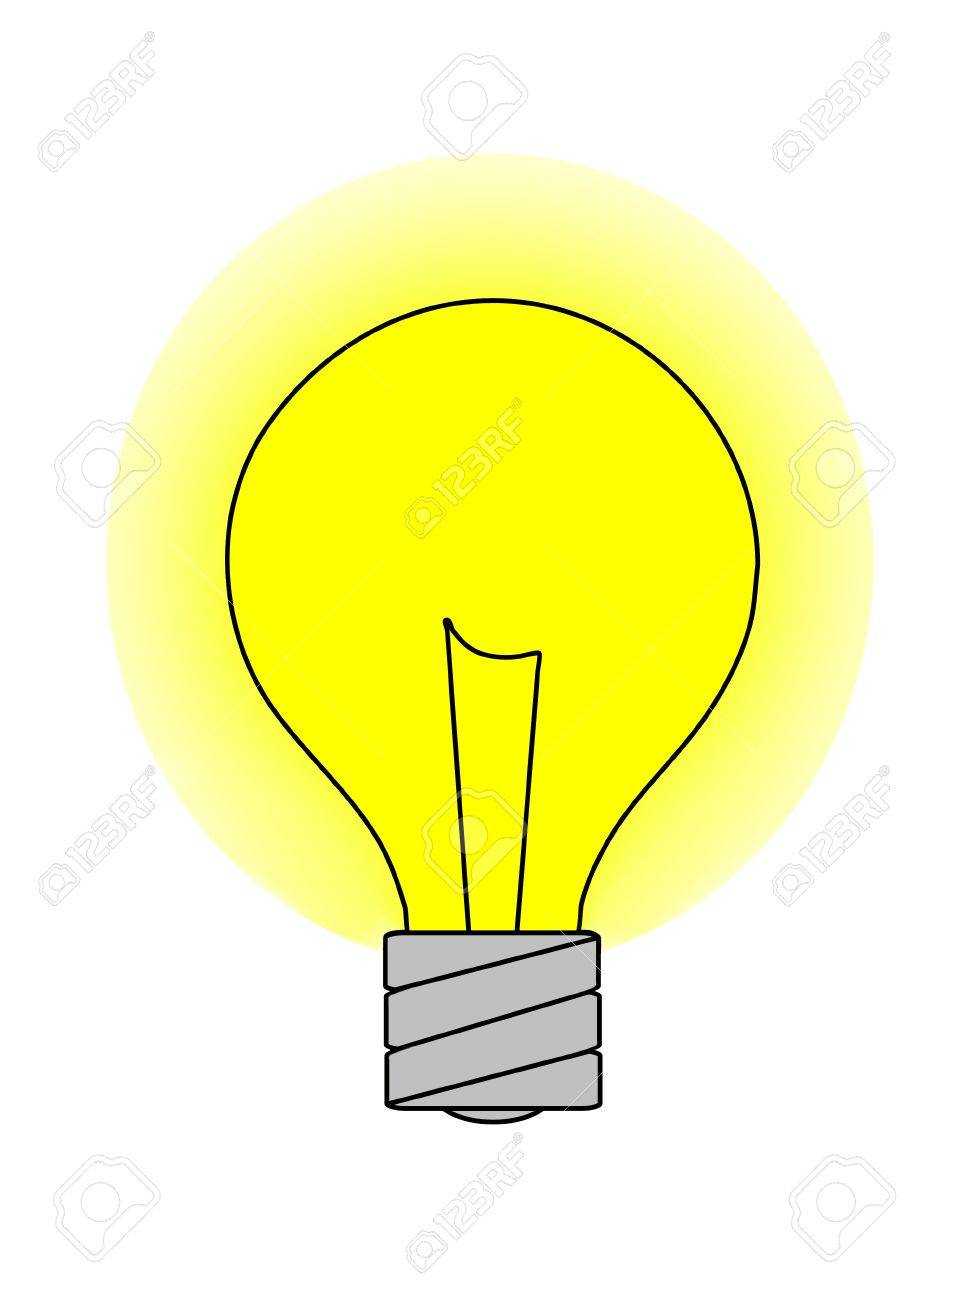 A Graphic Of A Light Bulb With A Yellow Glow. Isolated On A Solid White